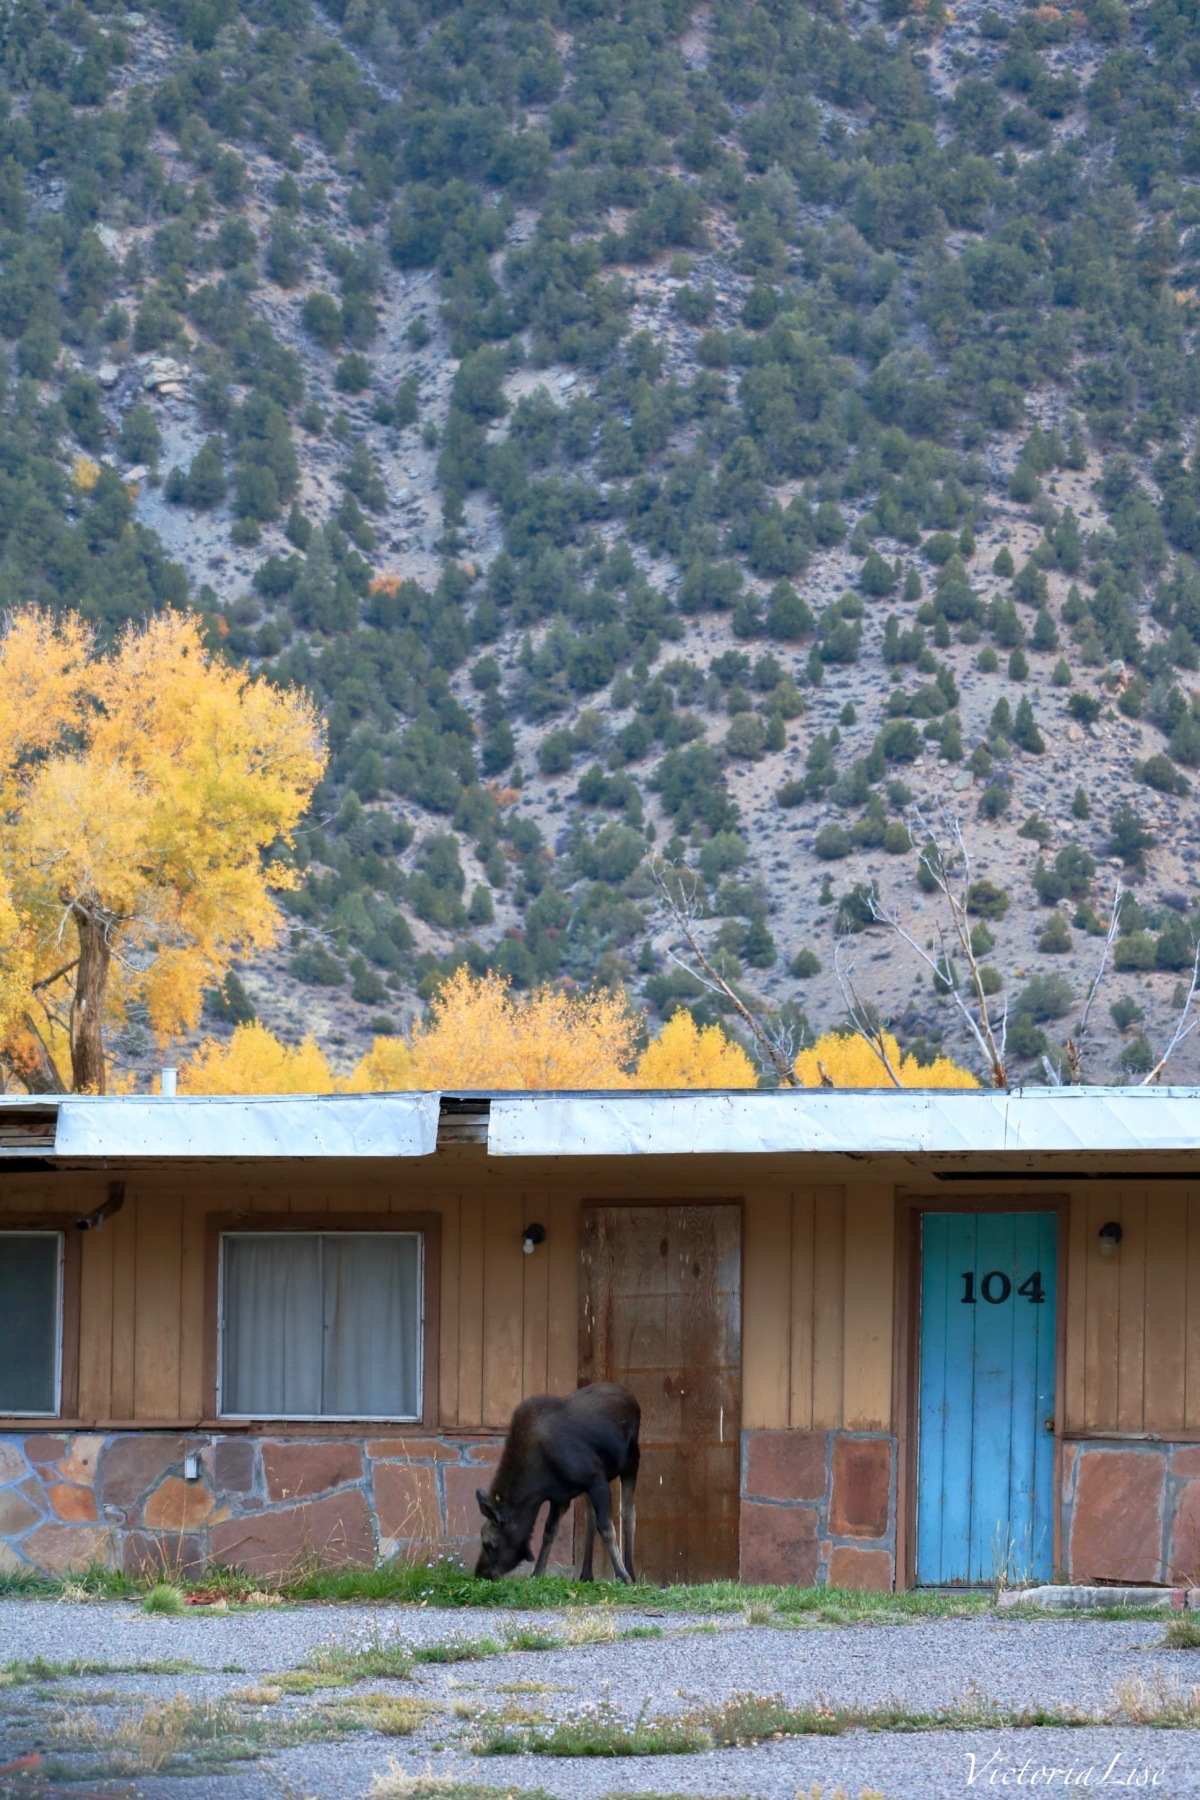 Early morning moose sighting in front of an abandoned Colorado Motel. ©Victoria Lise 2018.